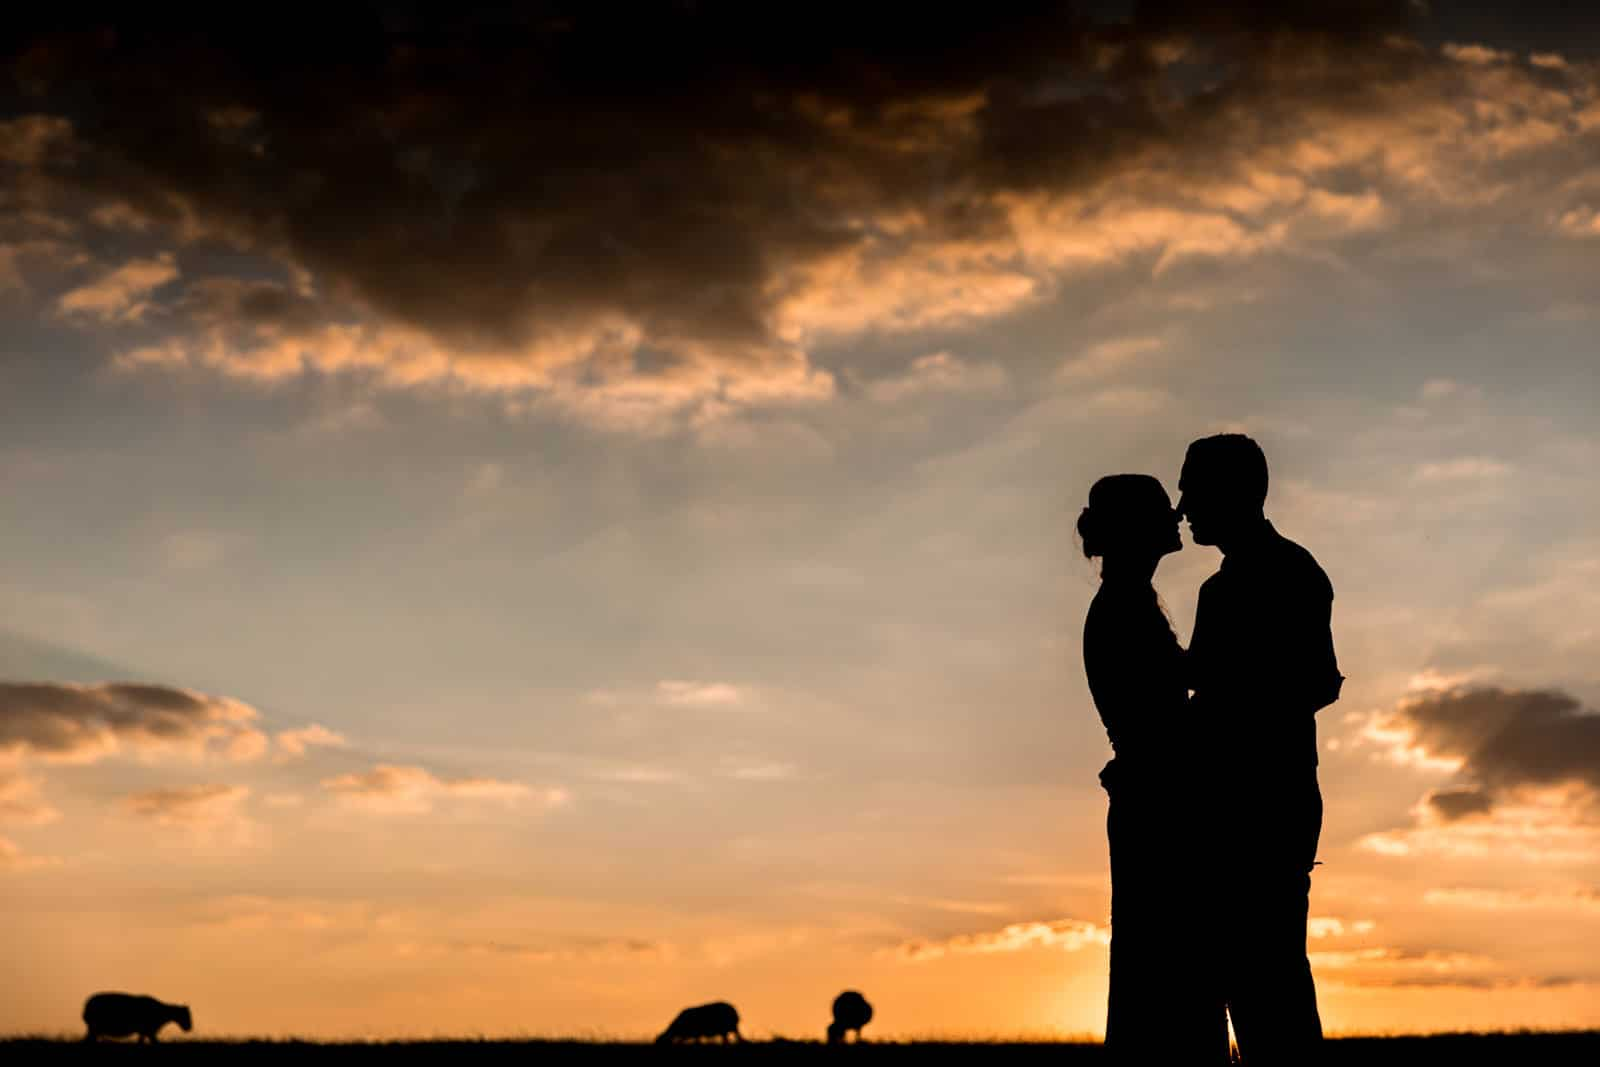 Amazing wedding sunset photography